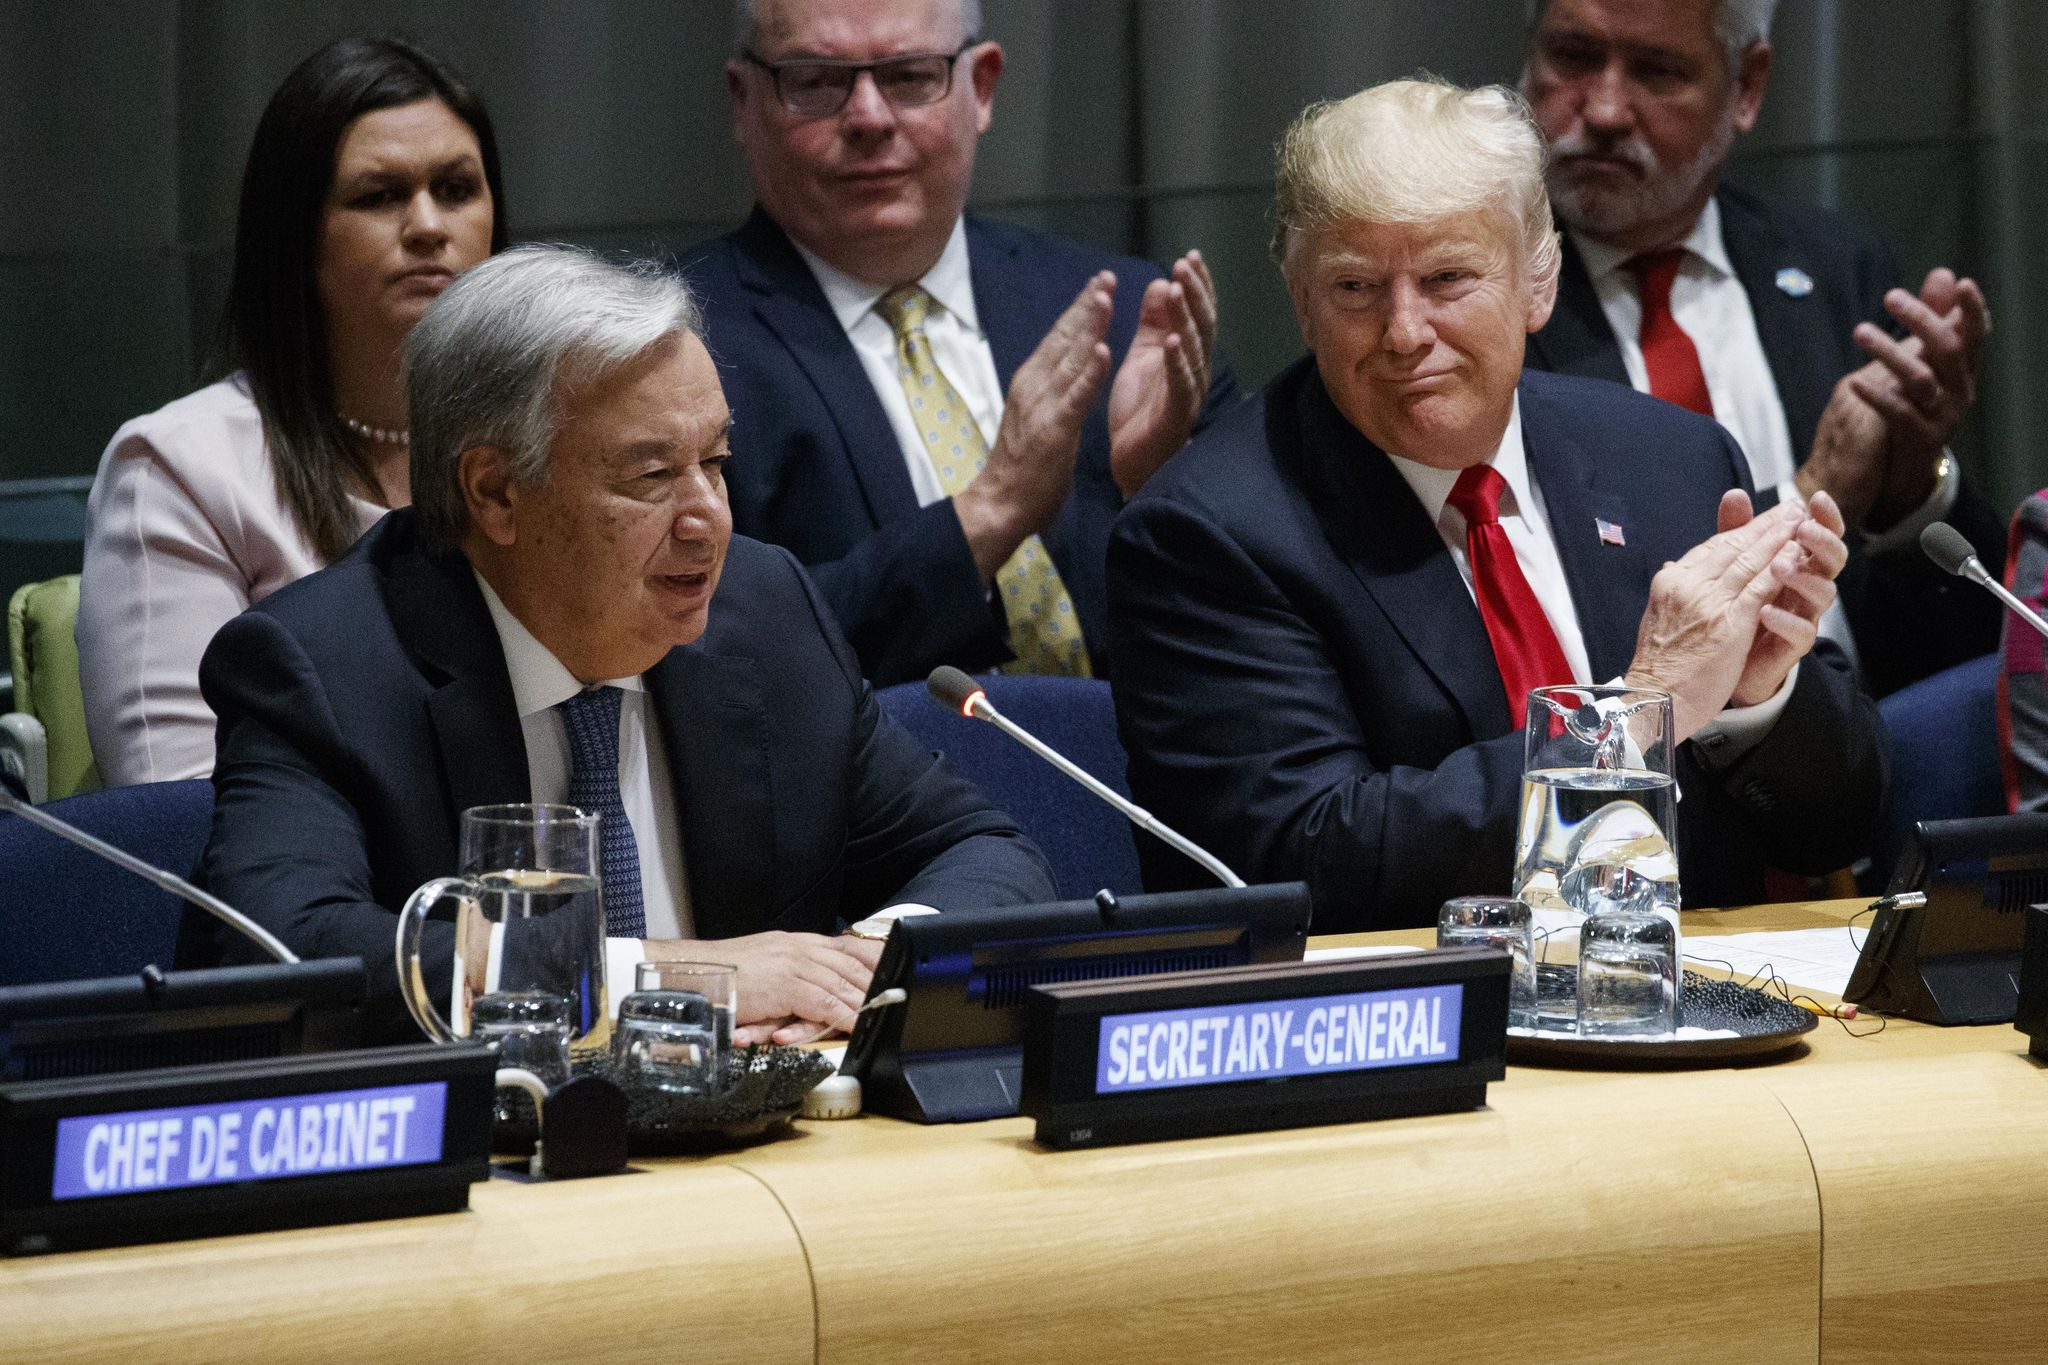 UN to caution against populism in high-level week - Washington Times